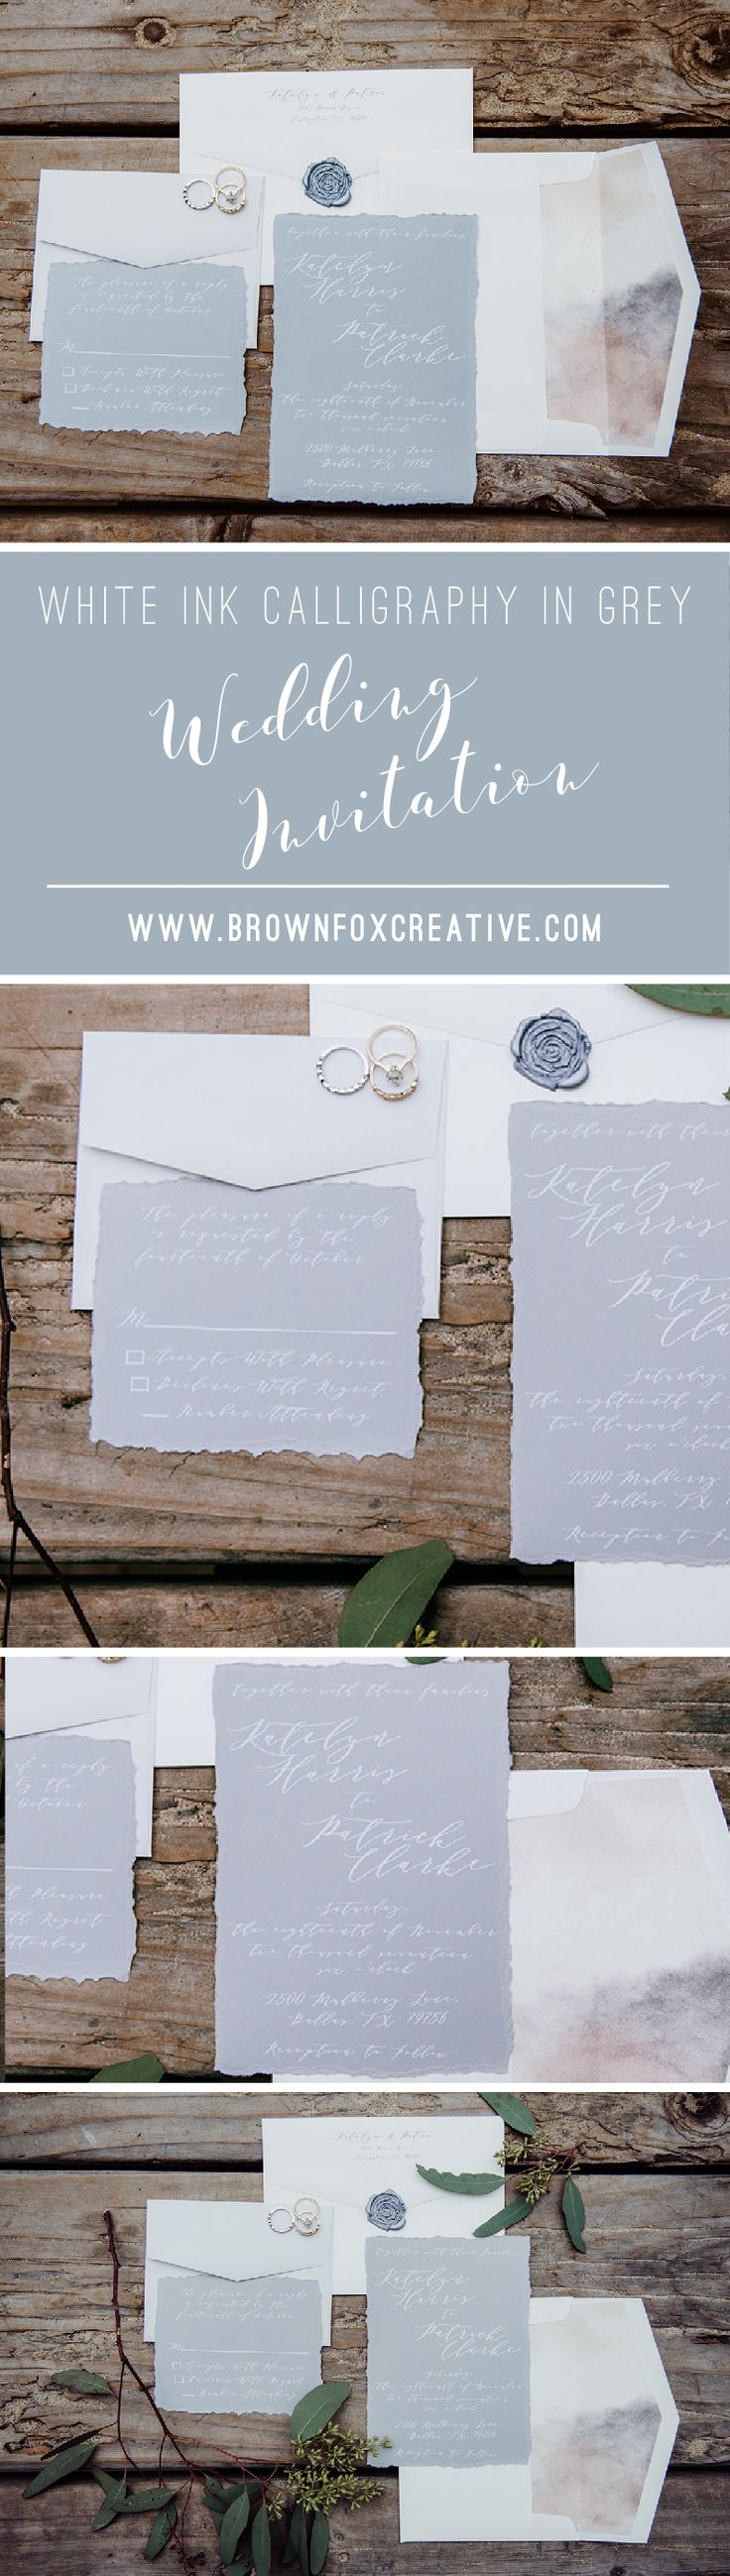 White Ink Calligraphy Natural Modern Wedding Invitation